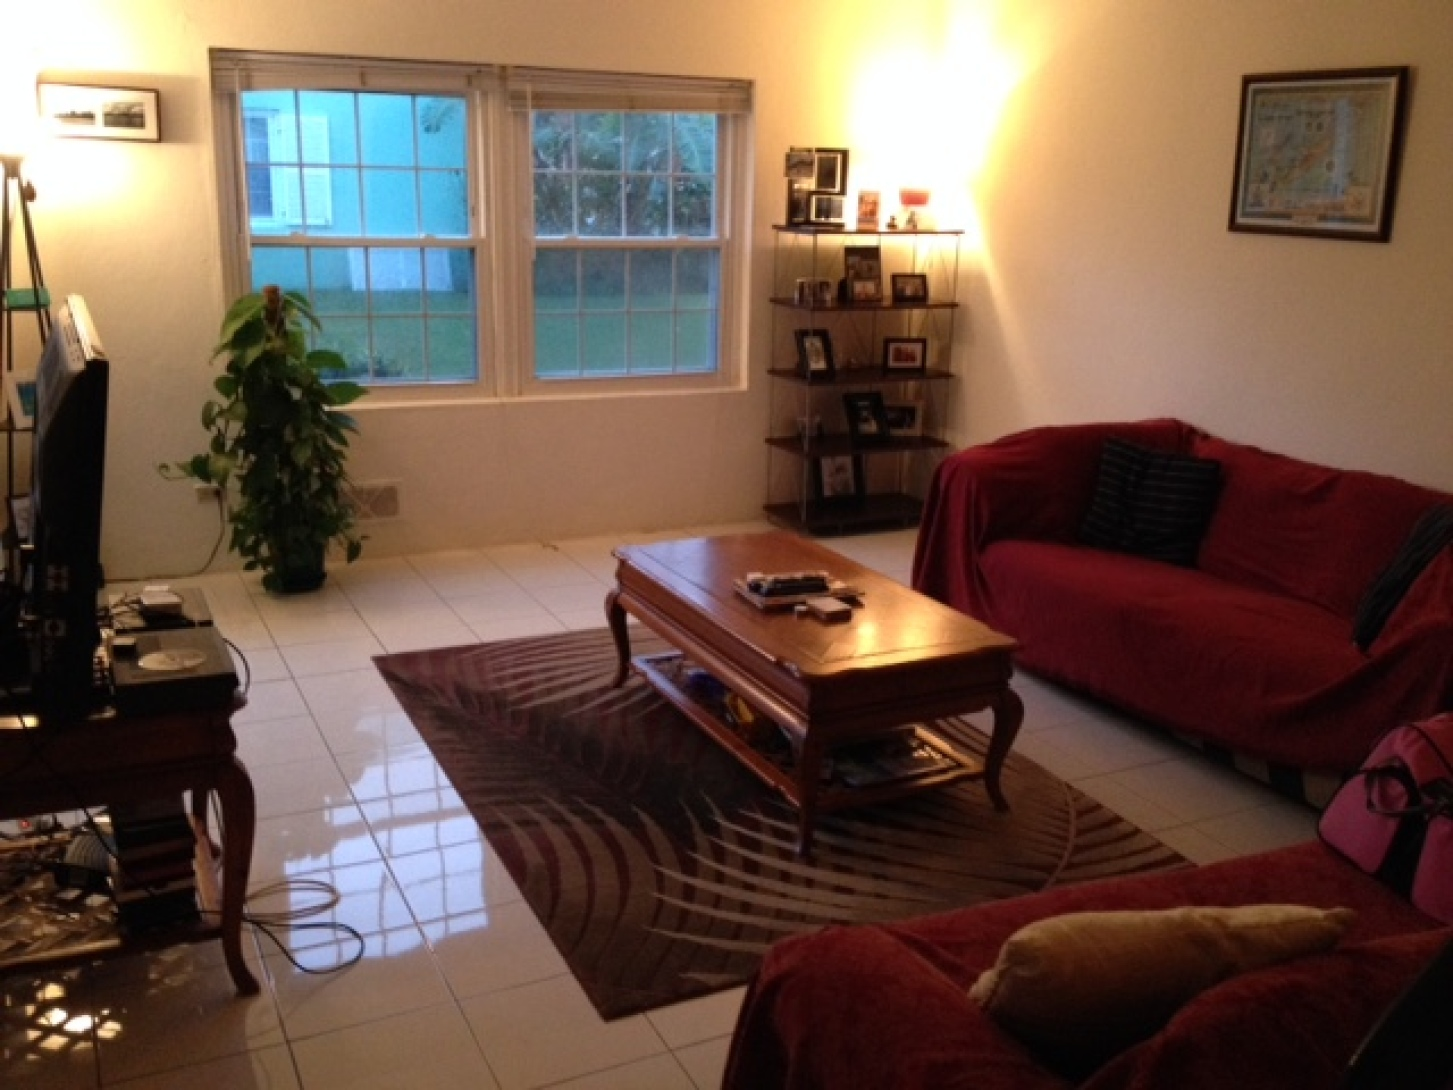 Large 2 Bedroom Apartment for rent - 5 mins from town, shared pool